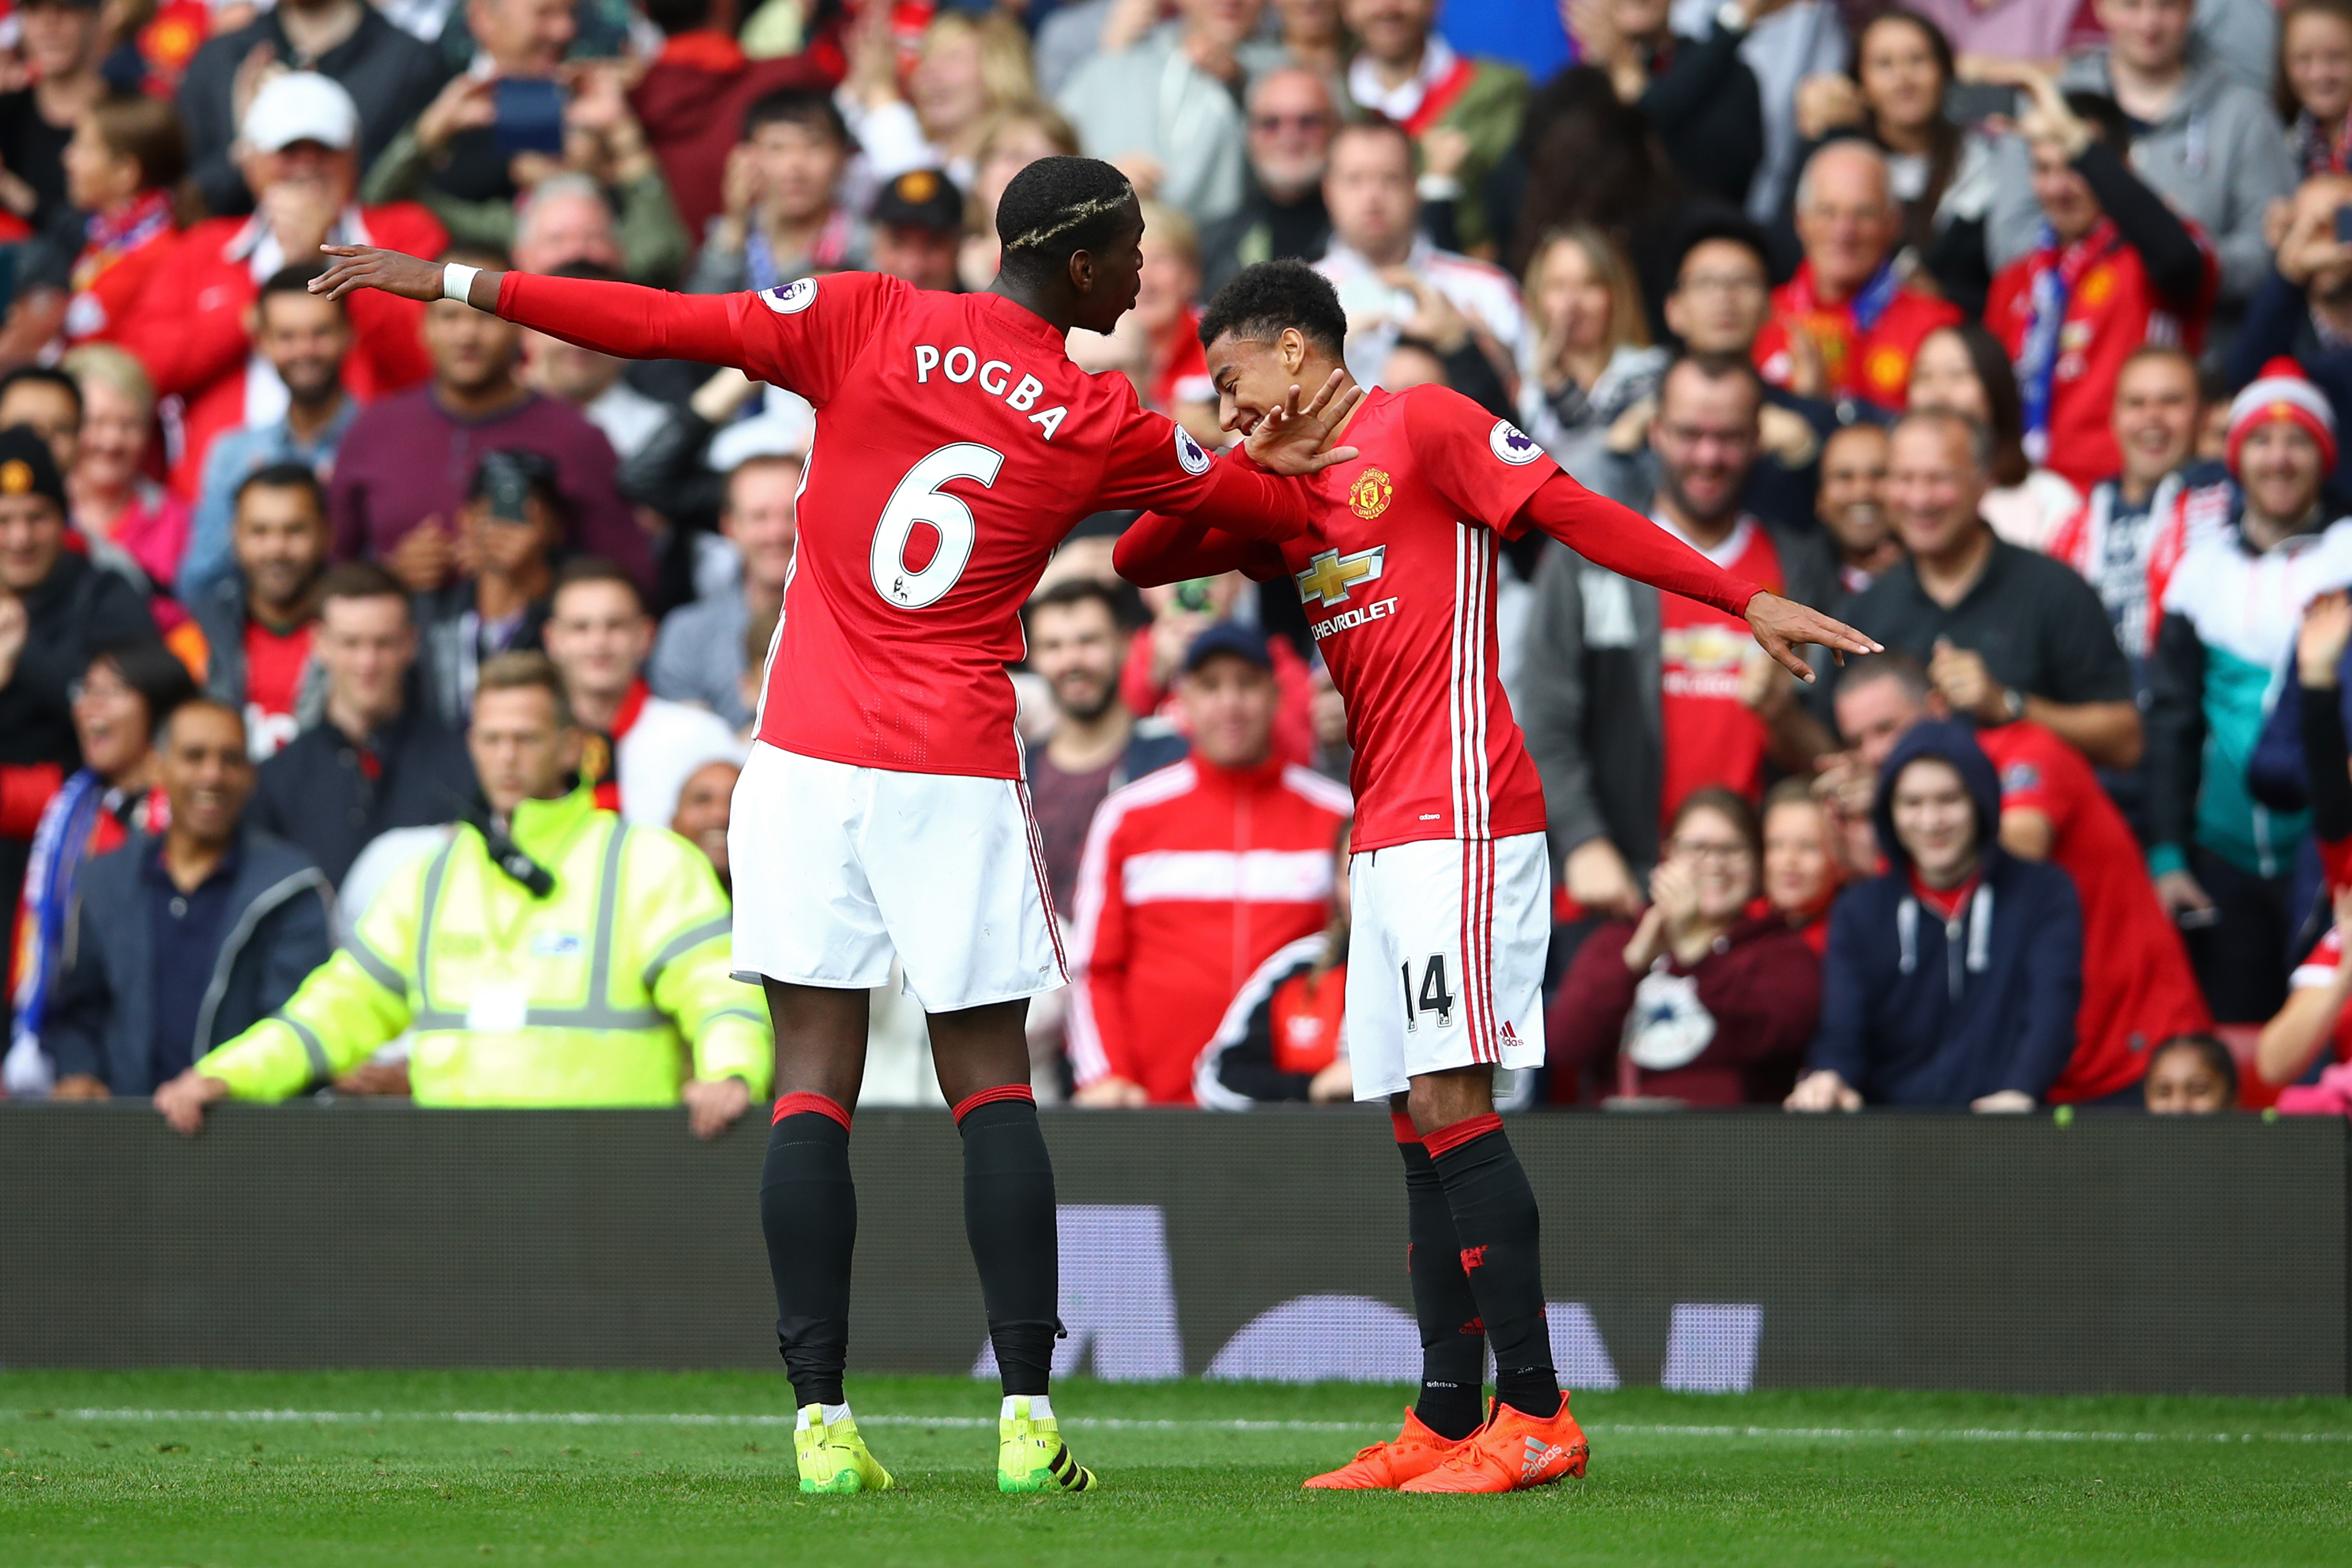 609018ecea4 Man United duo Paul Pogba and Romelu Lukaku top list of 20 highest ...